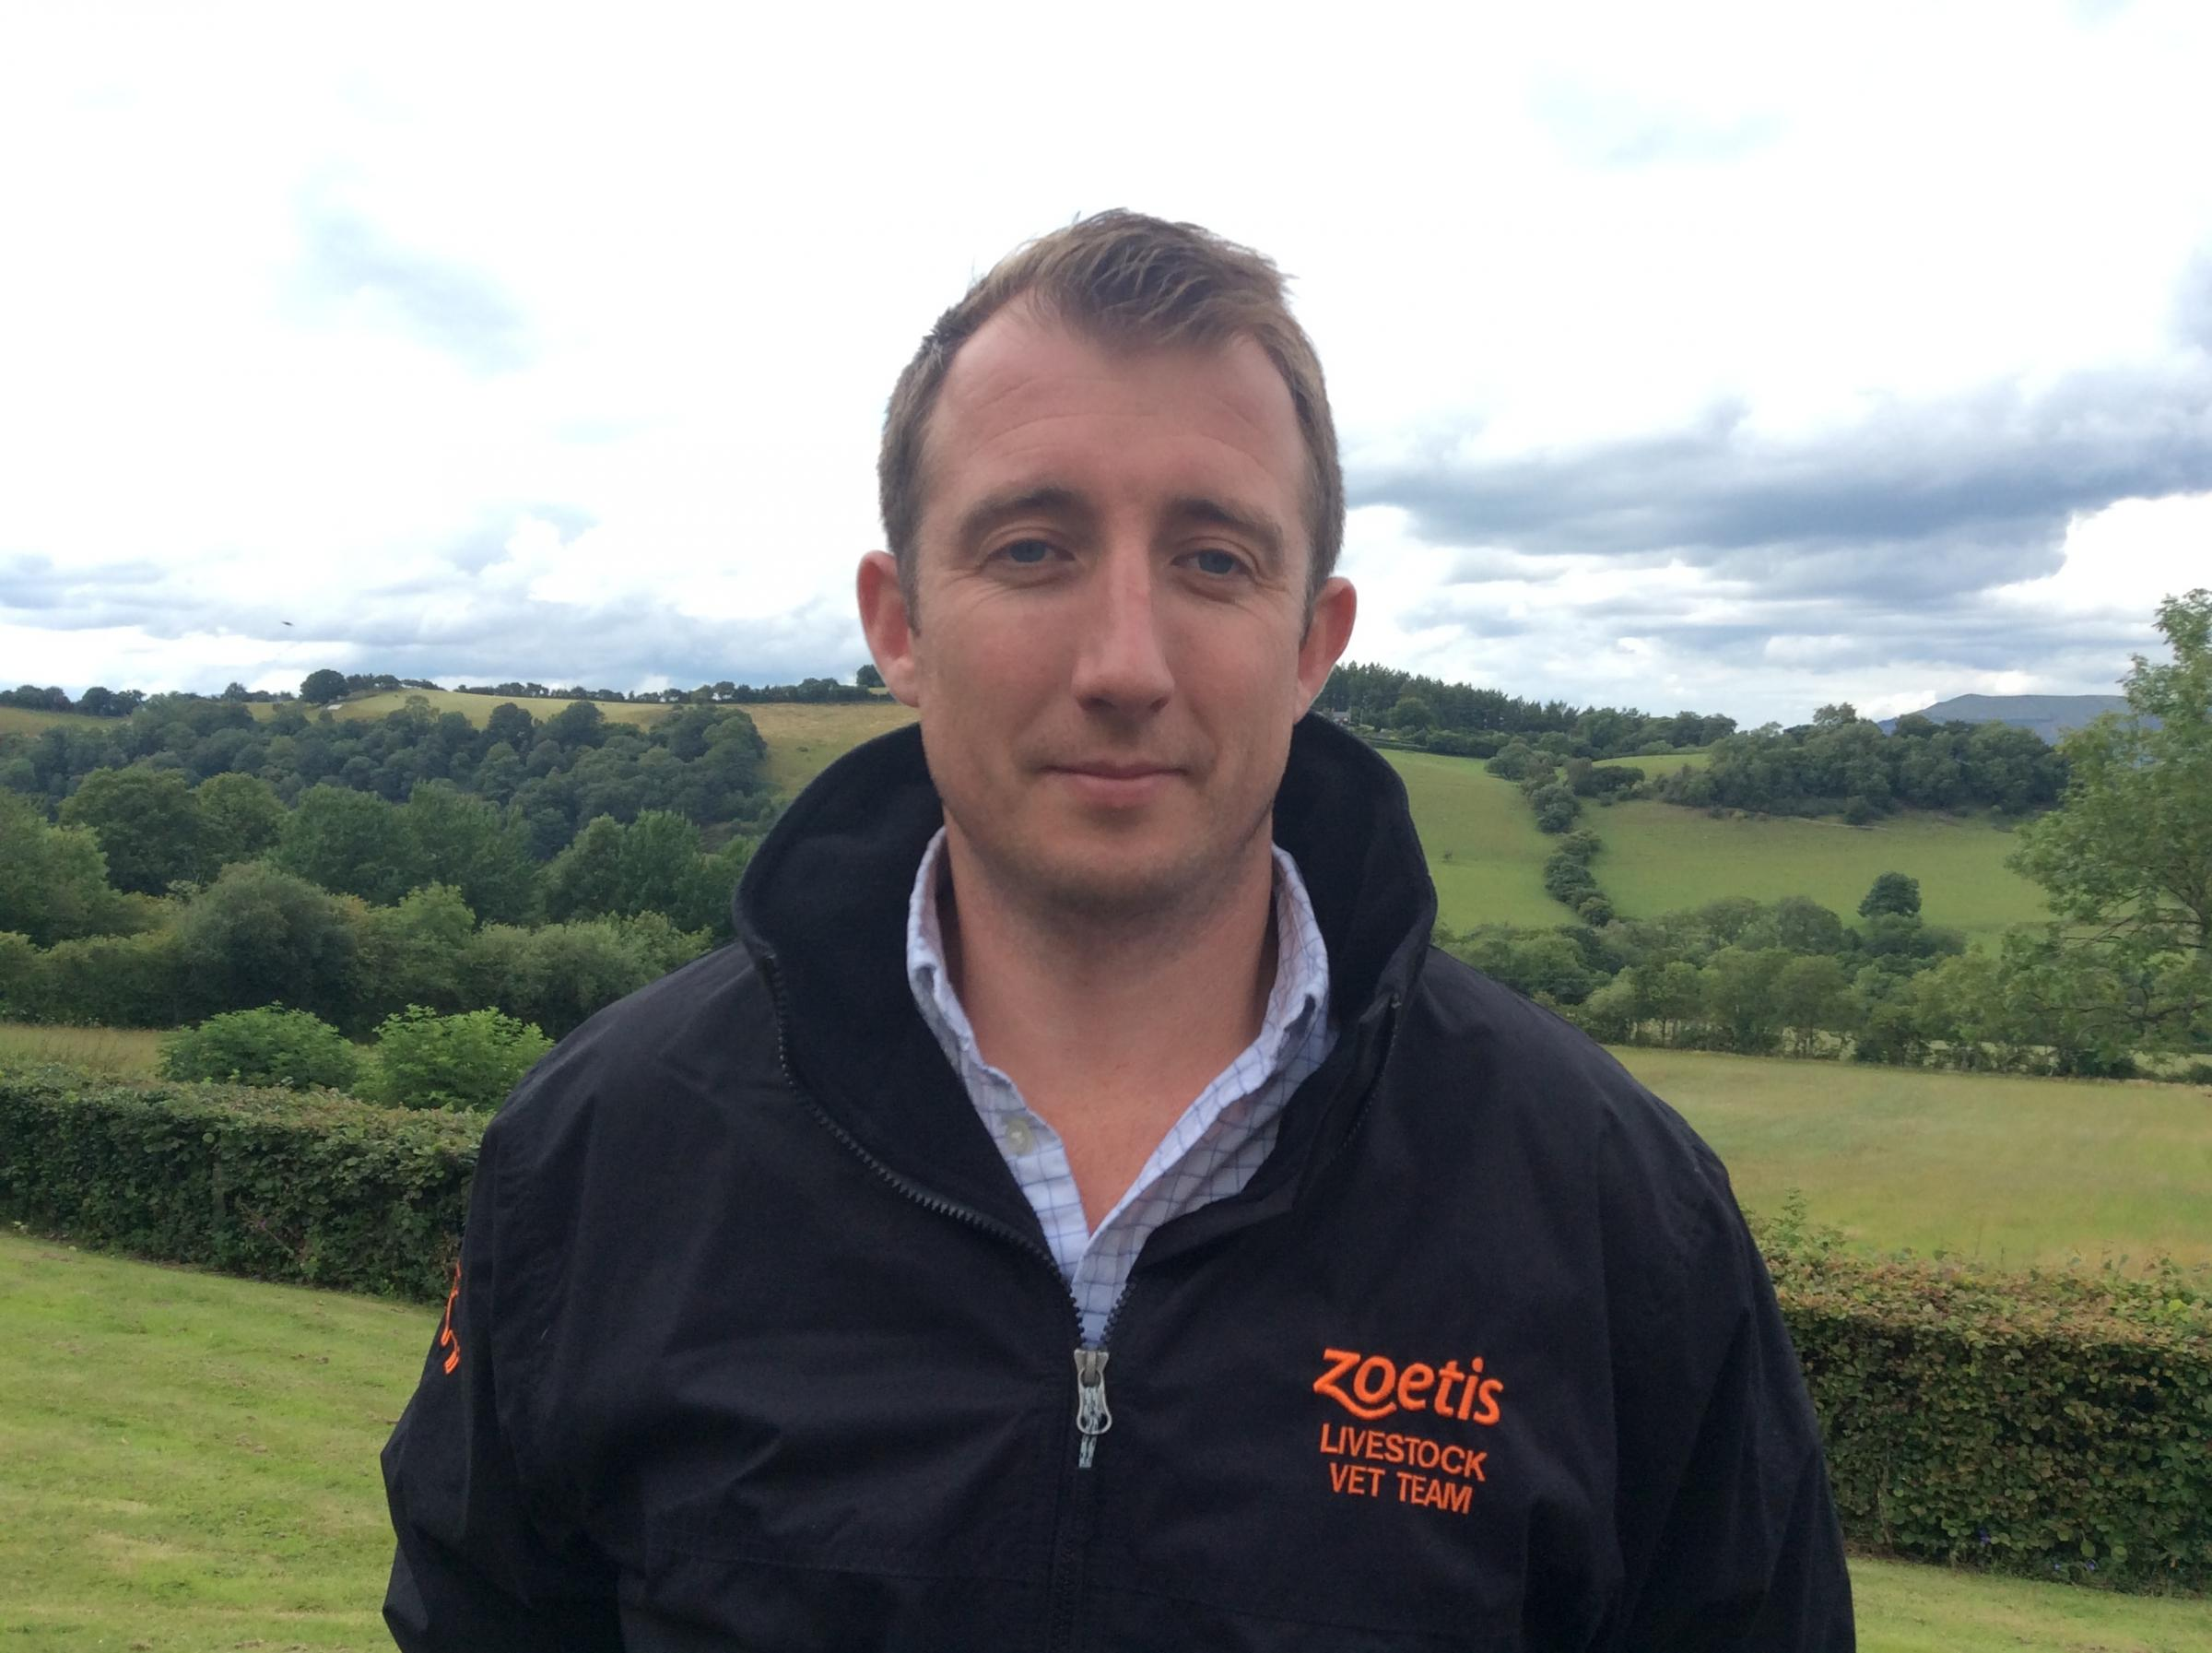 Zoetis National Veterinary Manager Dr Dave Armstrong